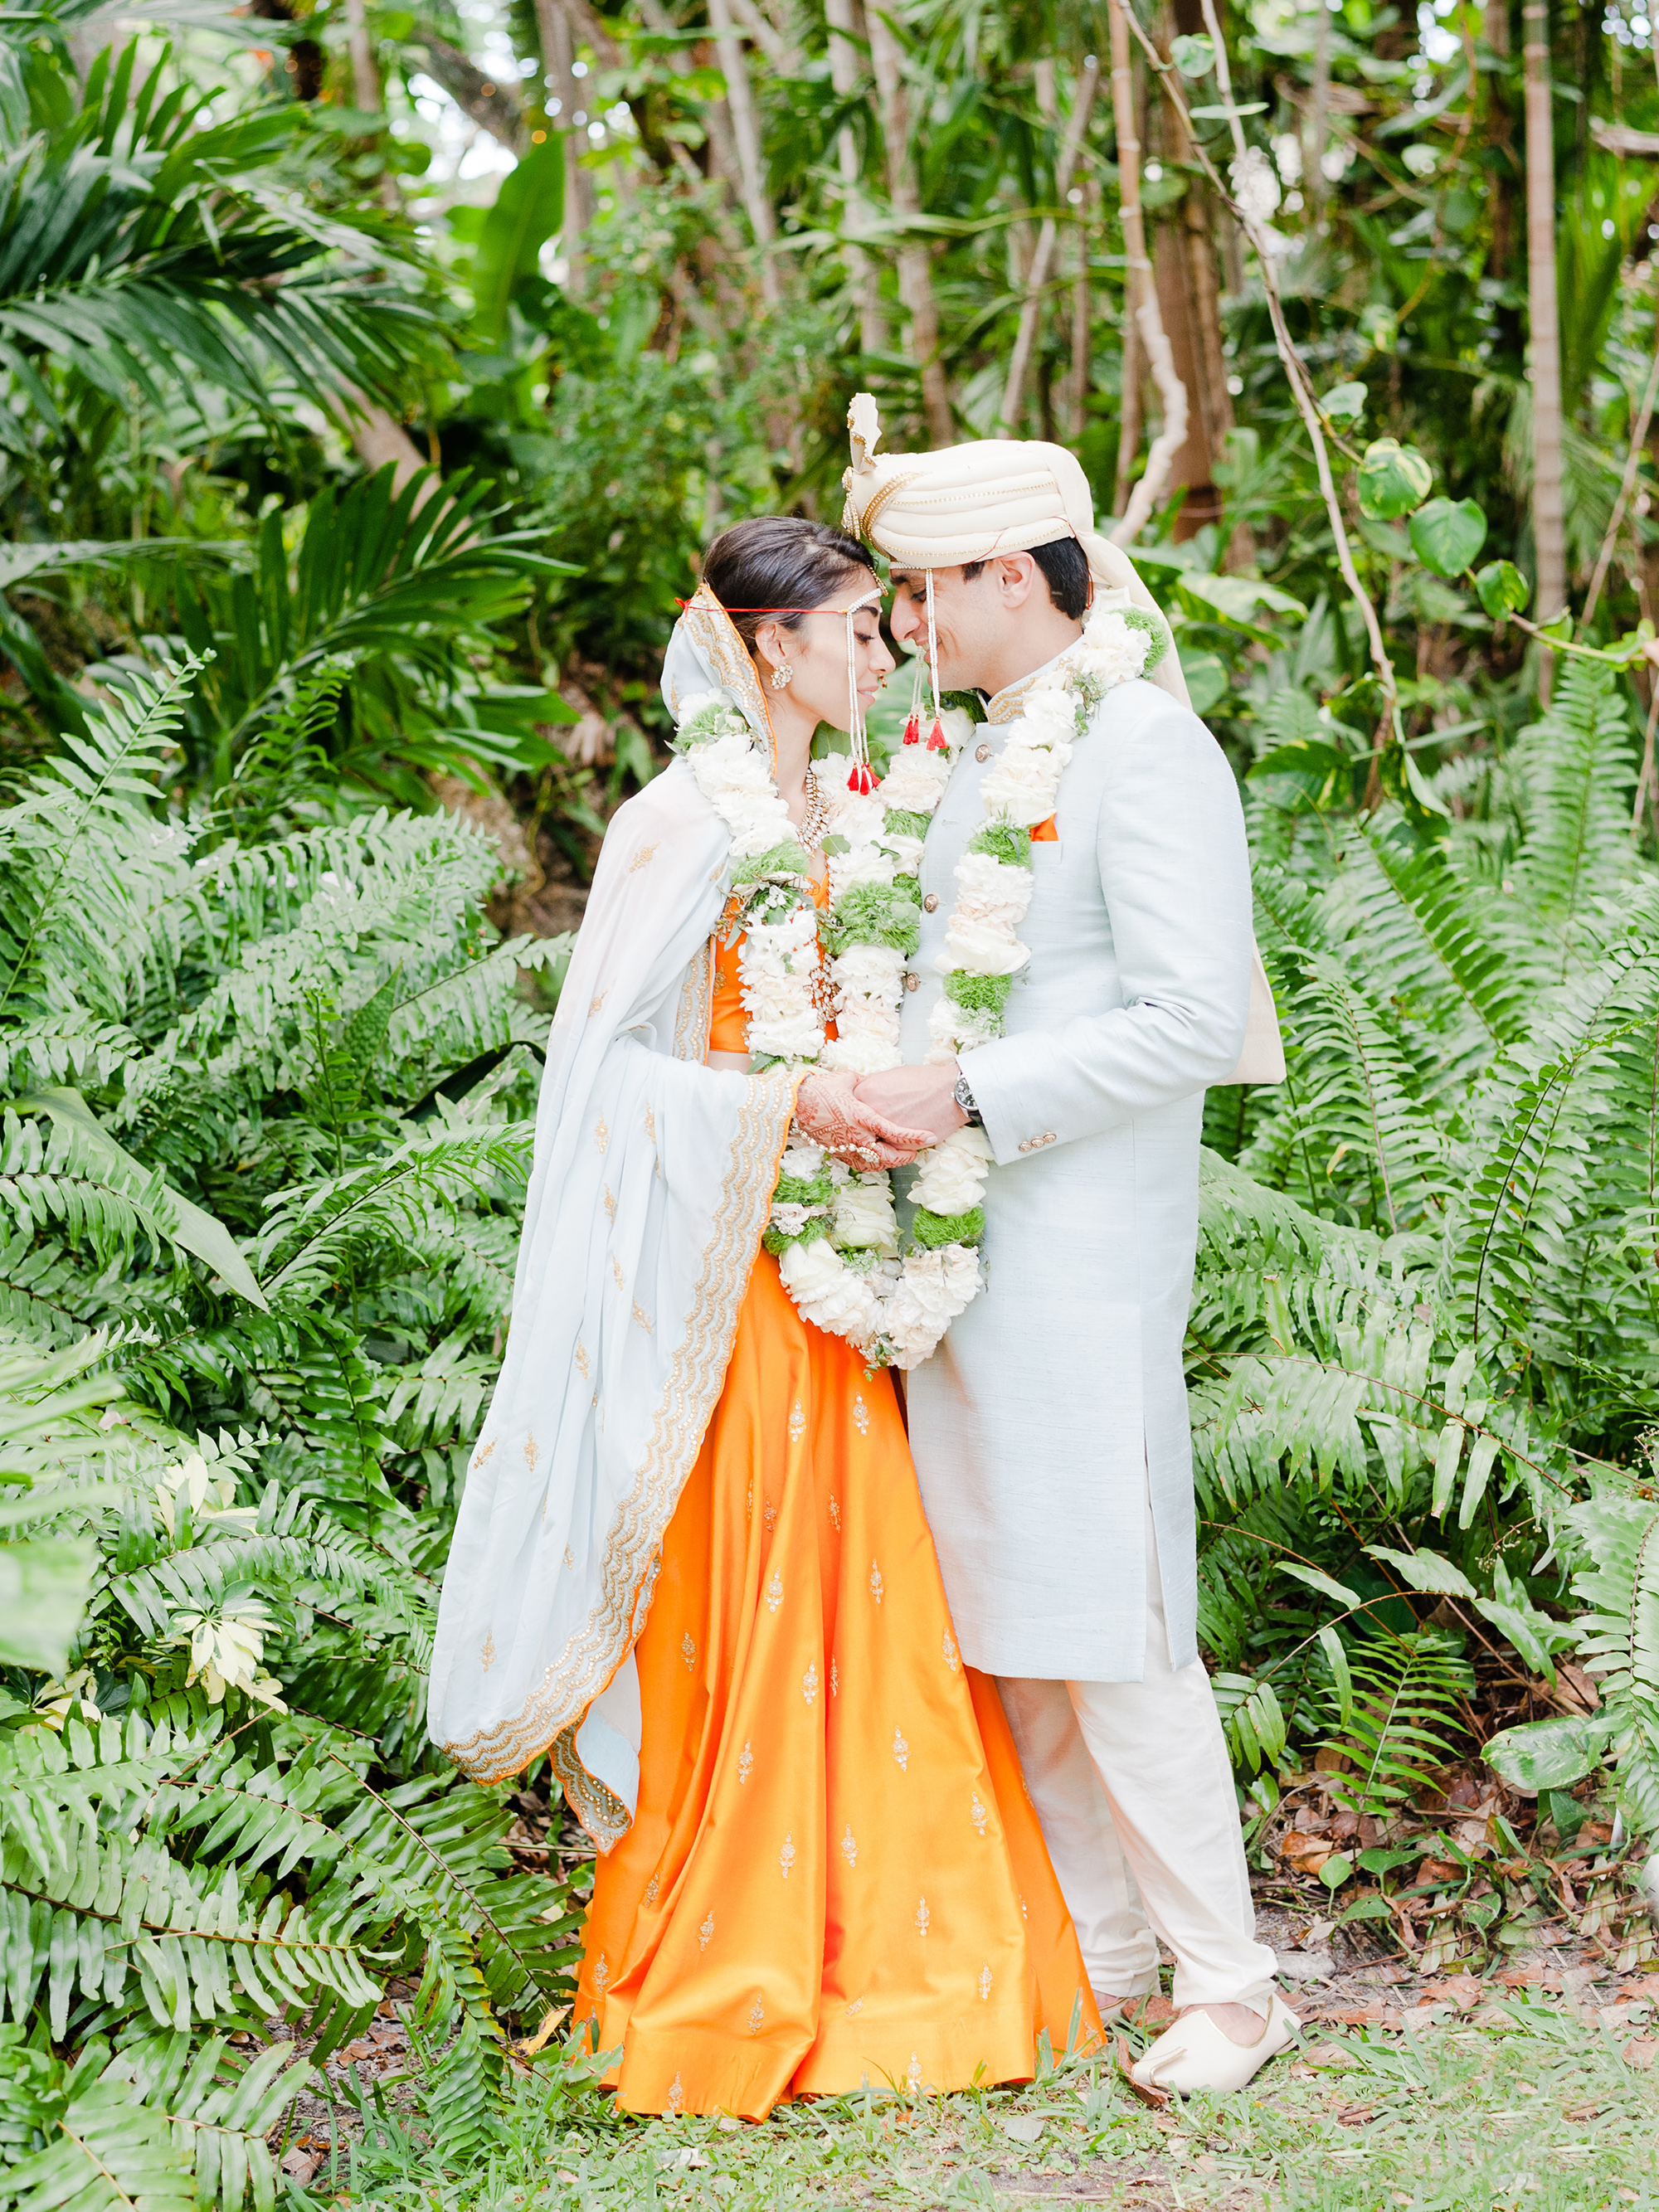 A Lush Garden in Miami Served as the Backdrop for This Couple's Colorful Indian Wedding